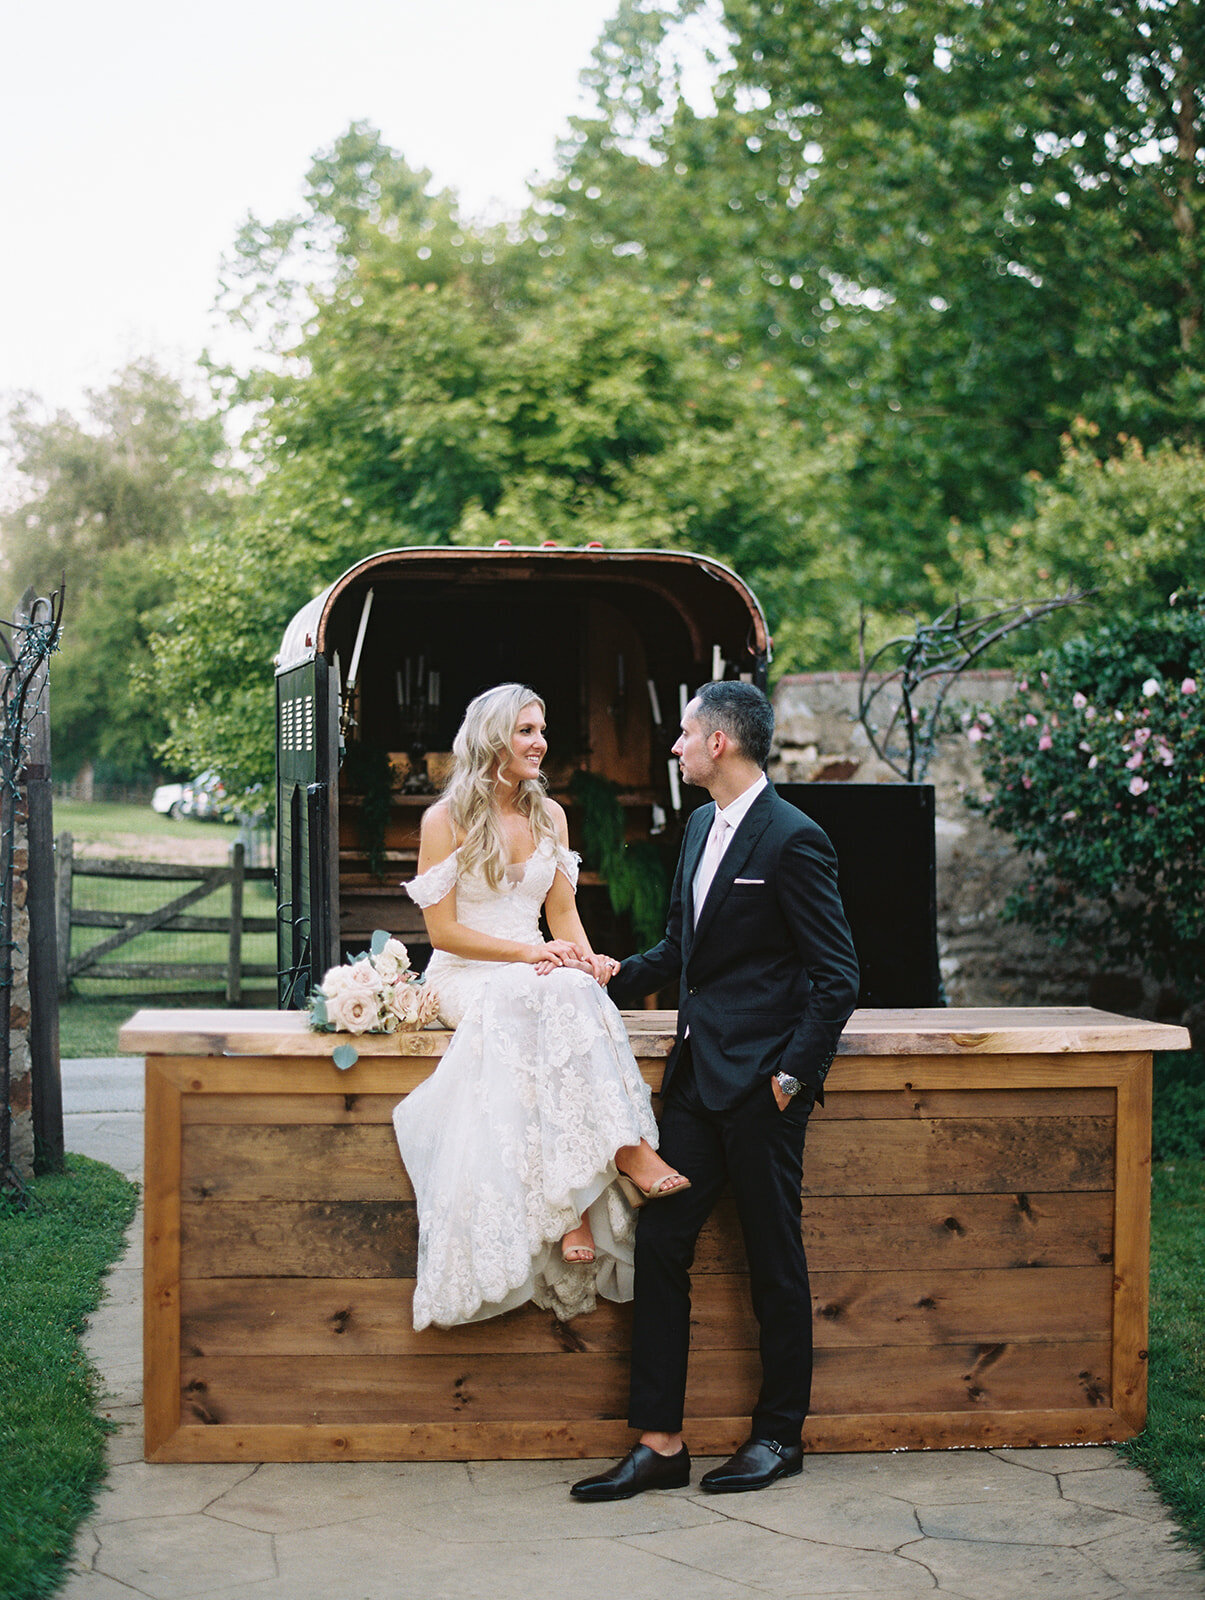 du_soleil_photographie_life'spatina_willowbrook_farm_wedding_christine_david_sunset-5_websize